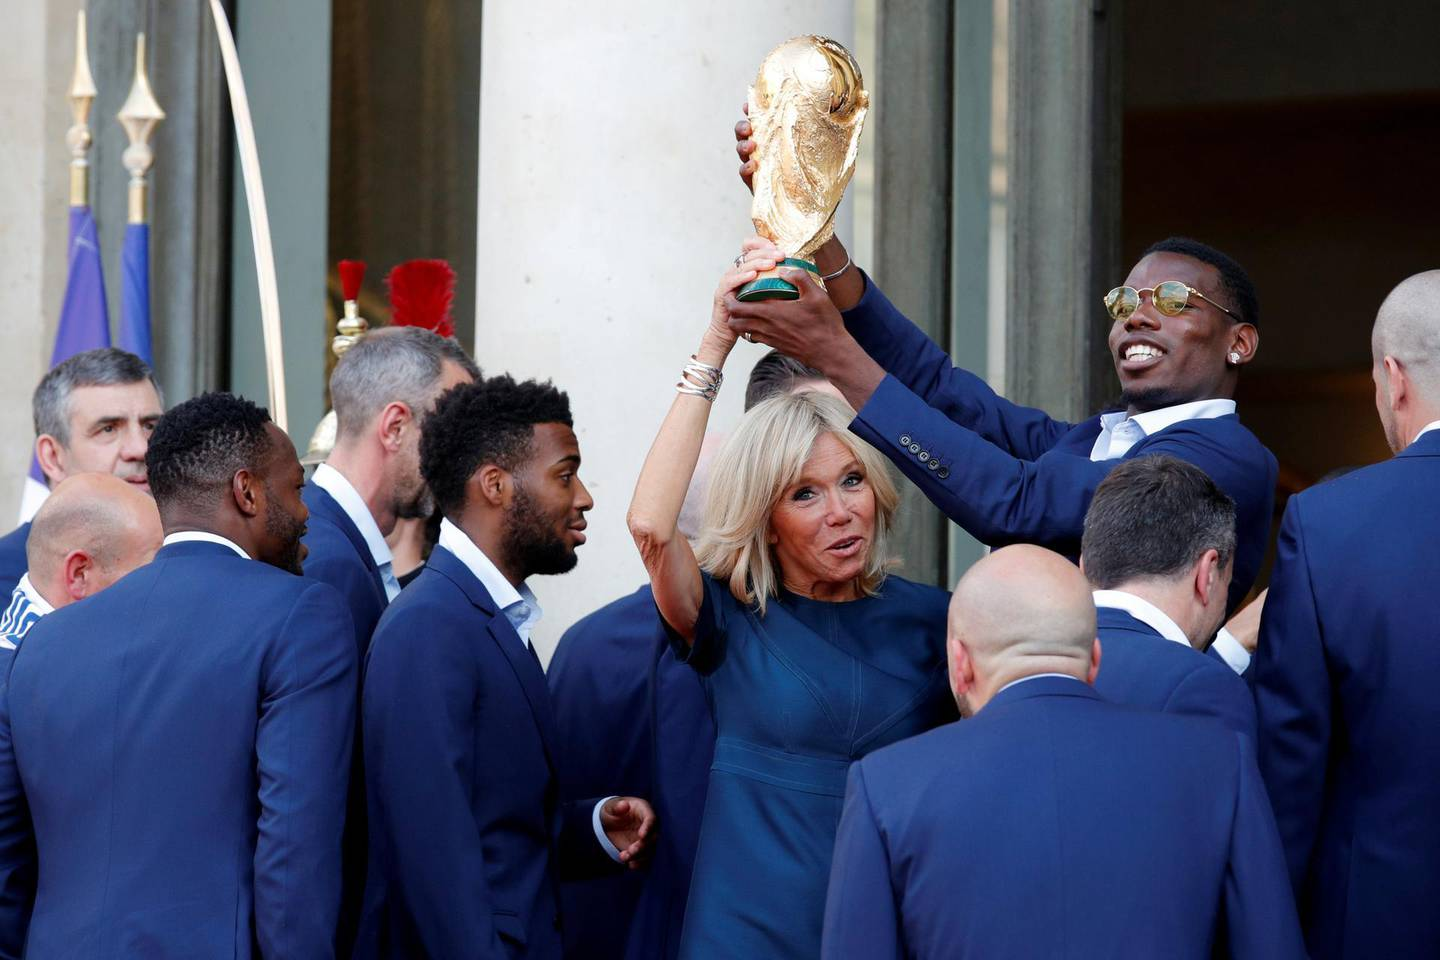 Brigitte Macron, the wife of French President Emmanuel Macron (not pictured), and player Paul Pogba hold the trophy before a reception to honour the France soccer team after their victory in the 2018 Russia Soccer World Cup, at the Elysee Palace in Paris, France, July 16, 2018.   REUTERS/Philippe Wojazer